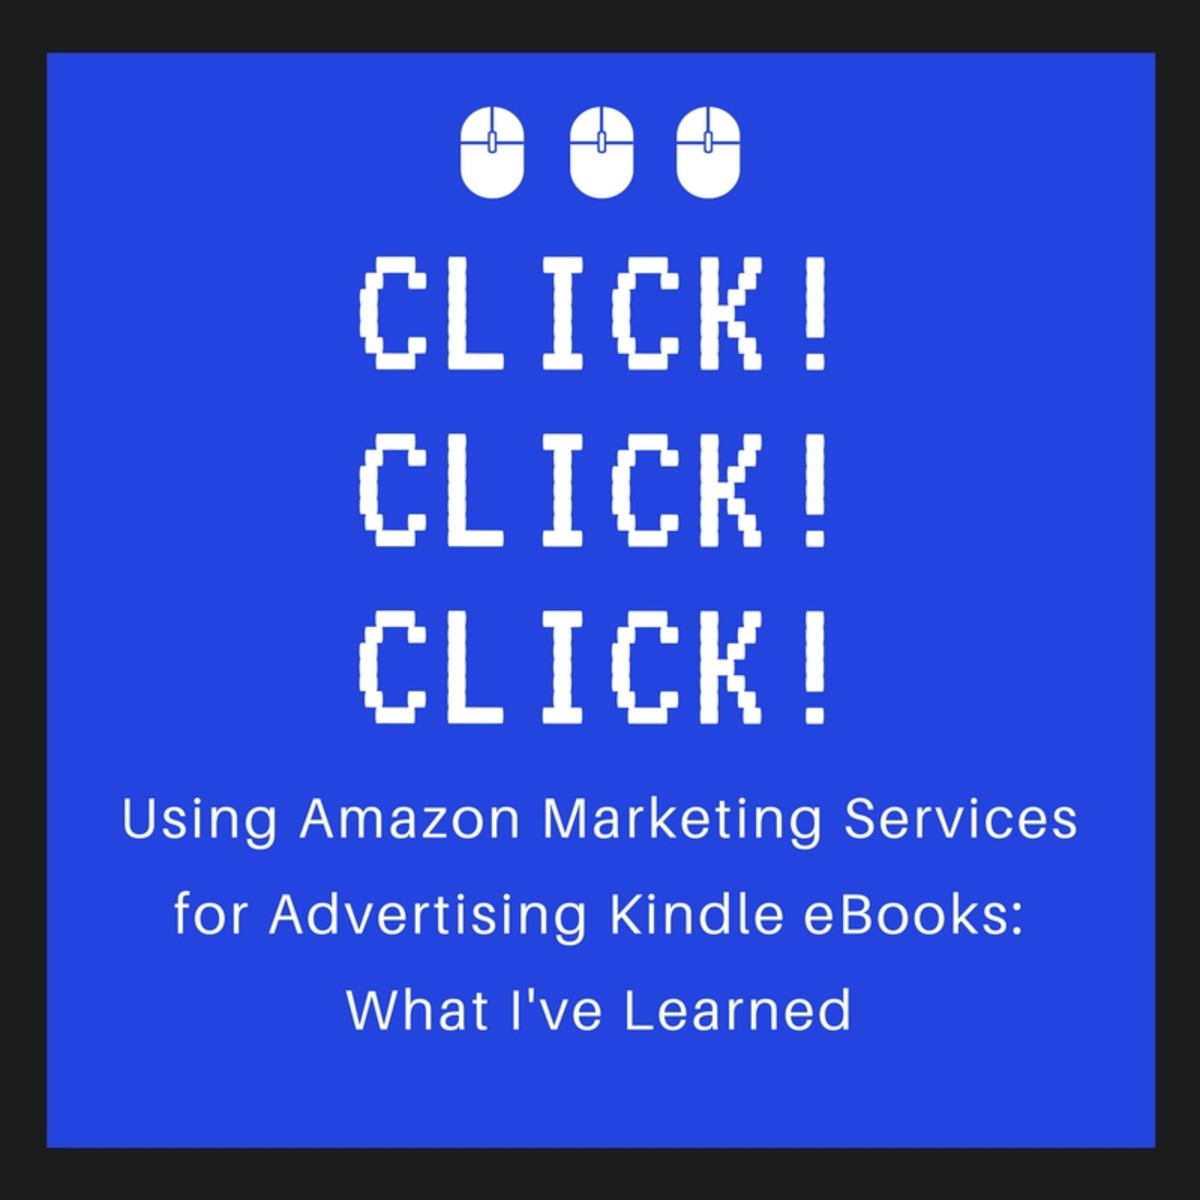 Using Amazon Marketing Services for Advertising Kindle Ebooks: What I've Learned